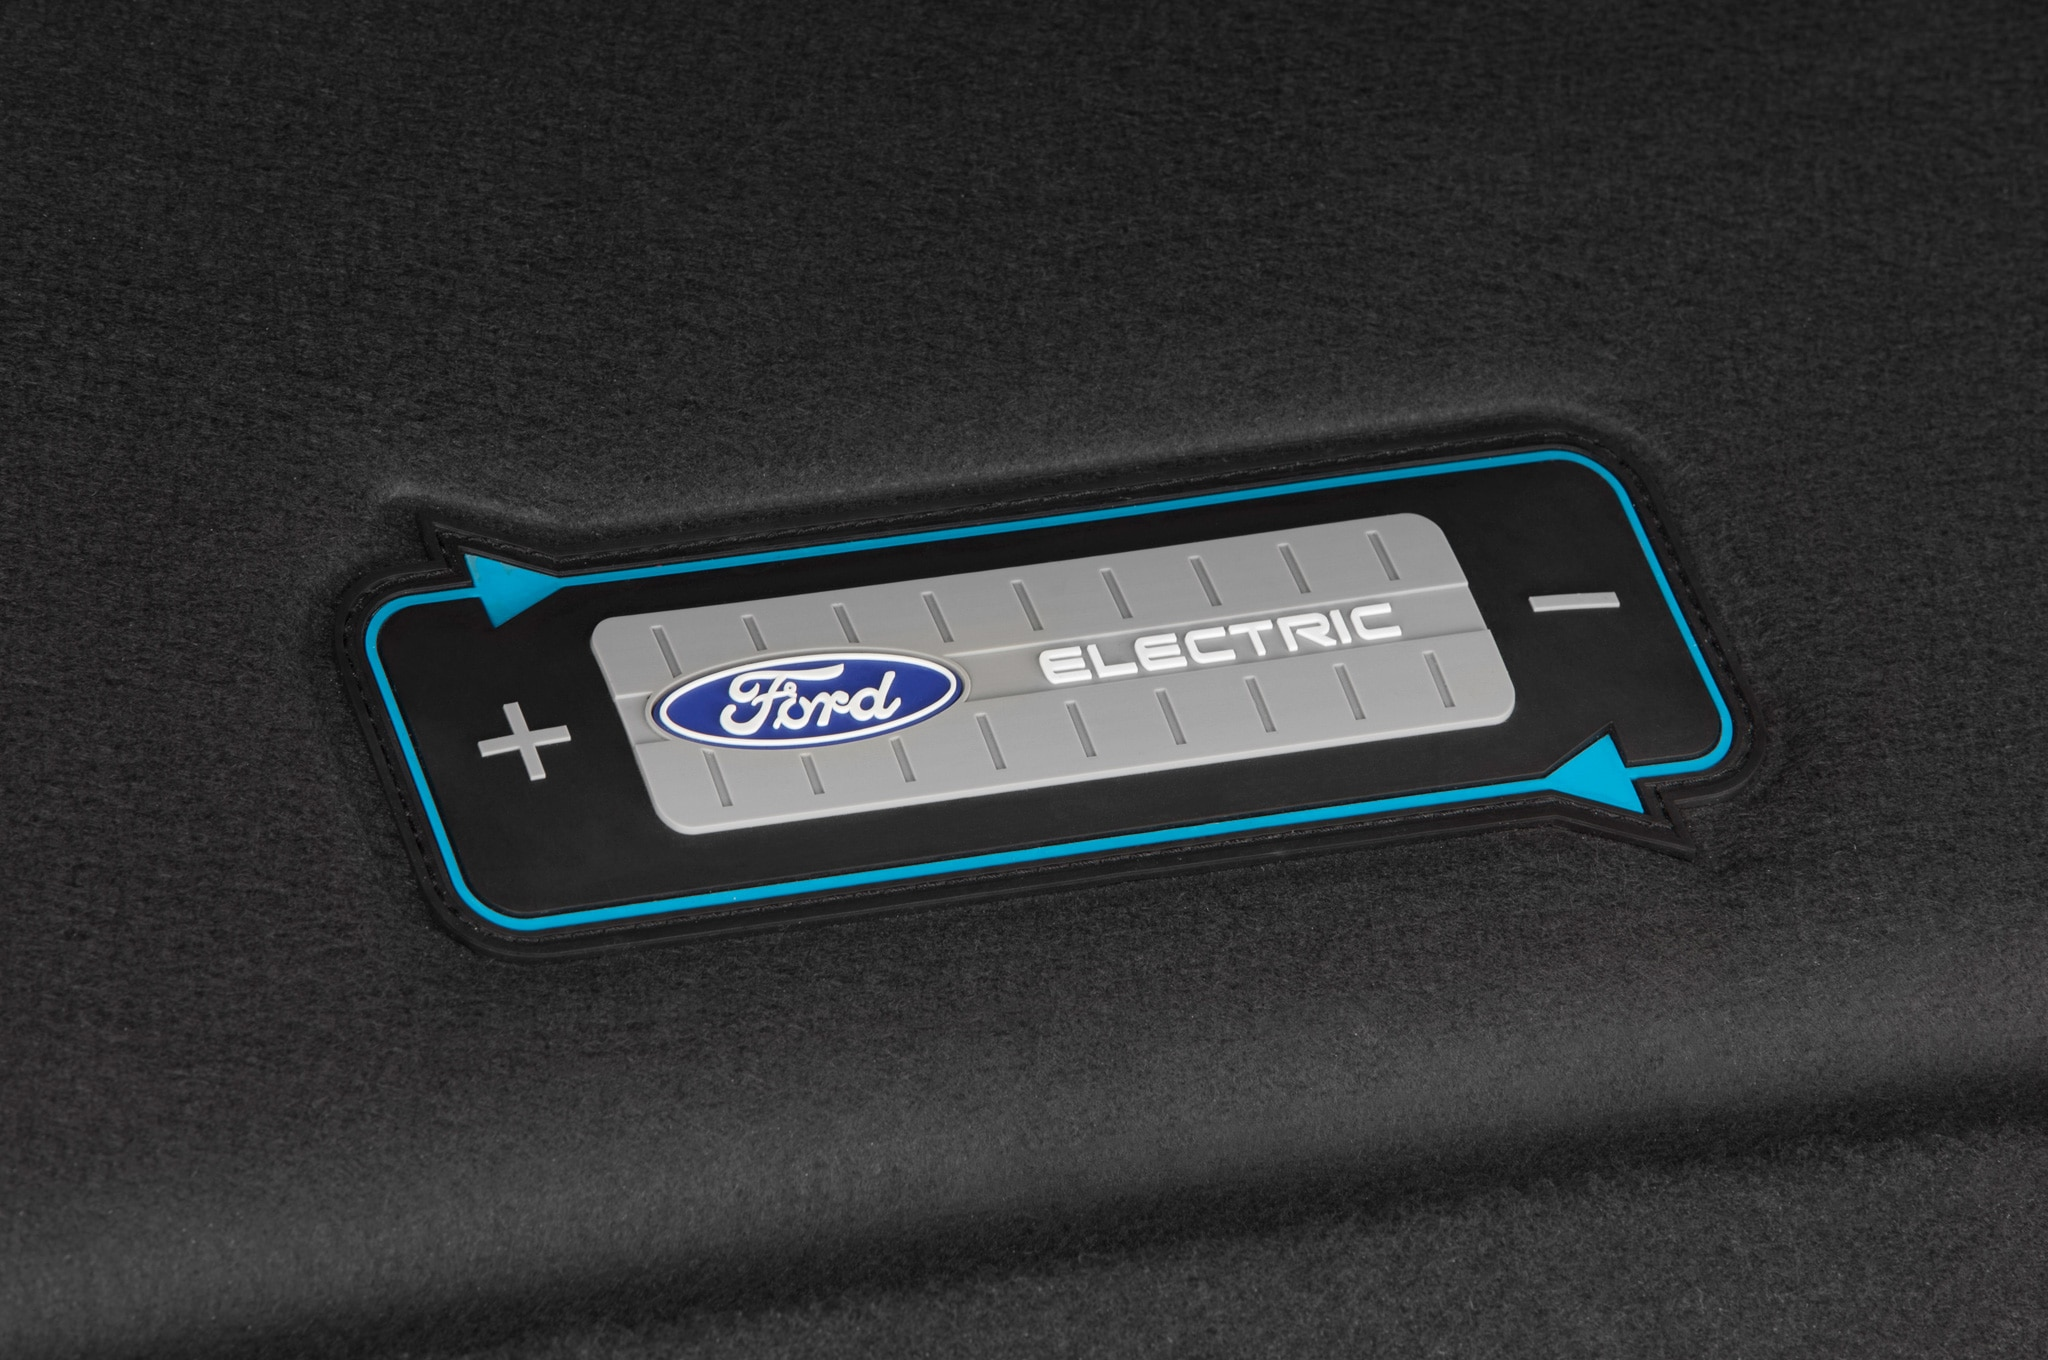 2015 Ford Focus Electric Interior Cord Cover Badge